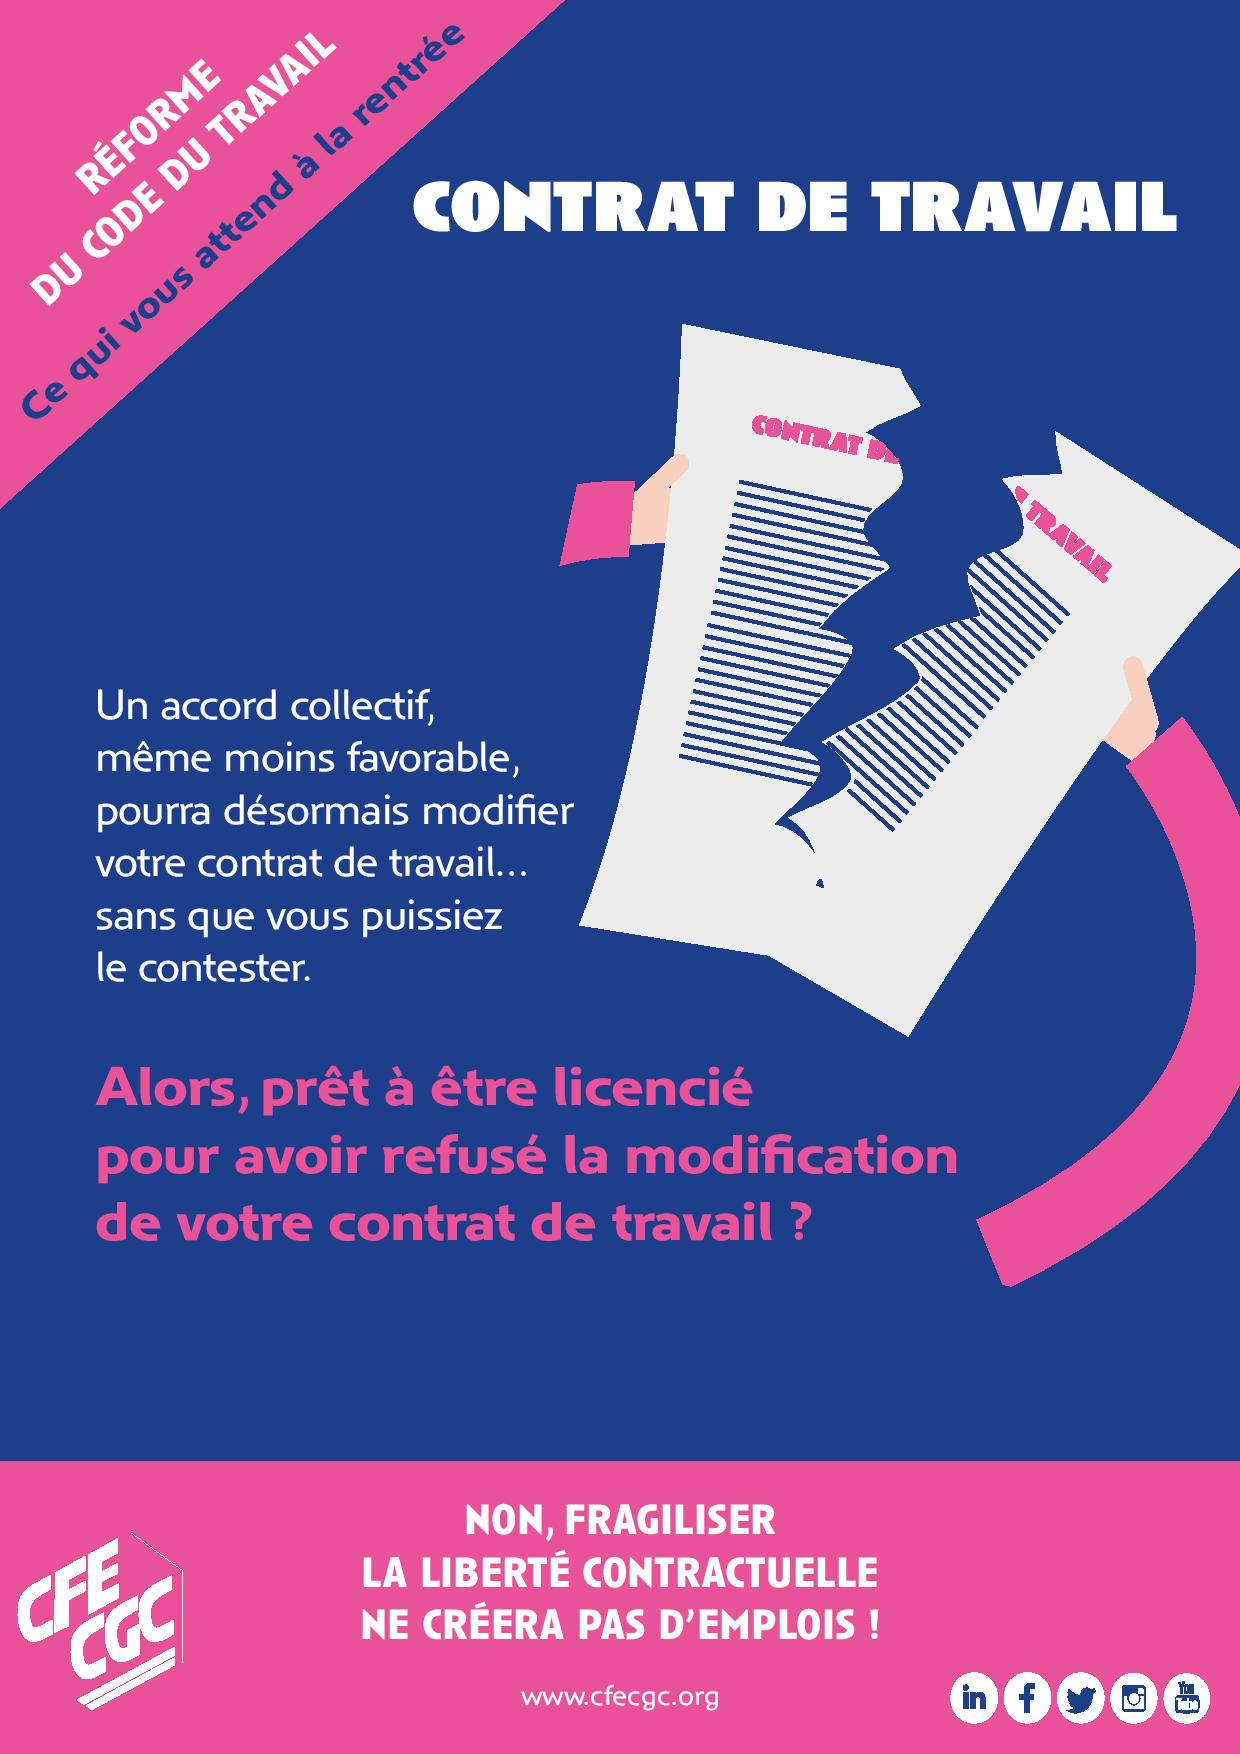 LoiTravailContratTravail-page-001.jpg